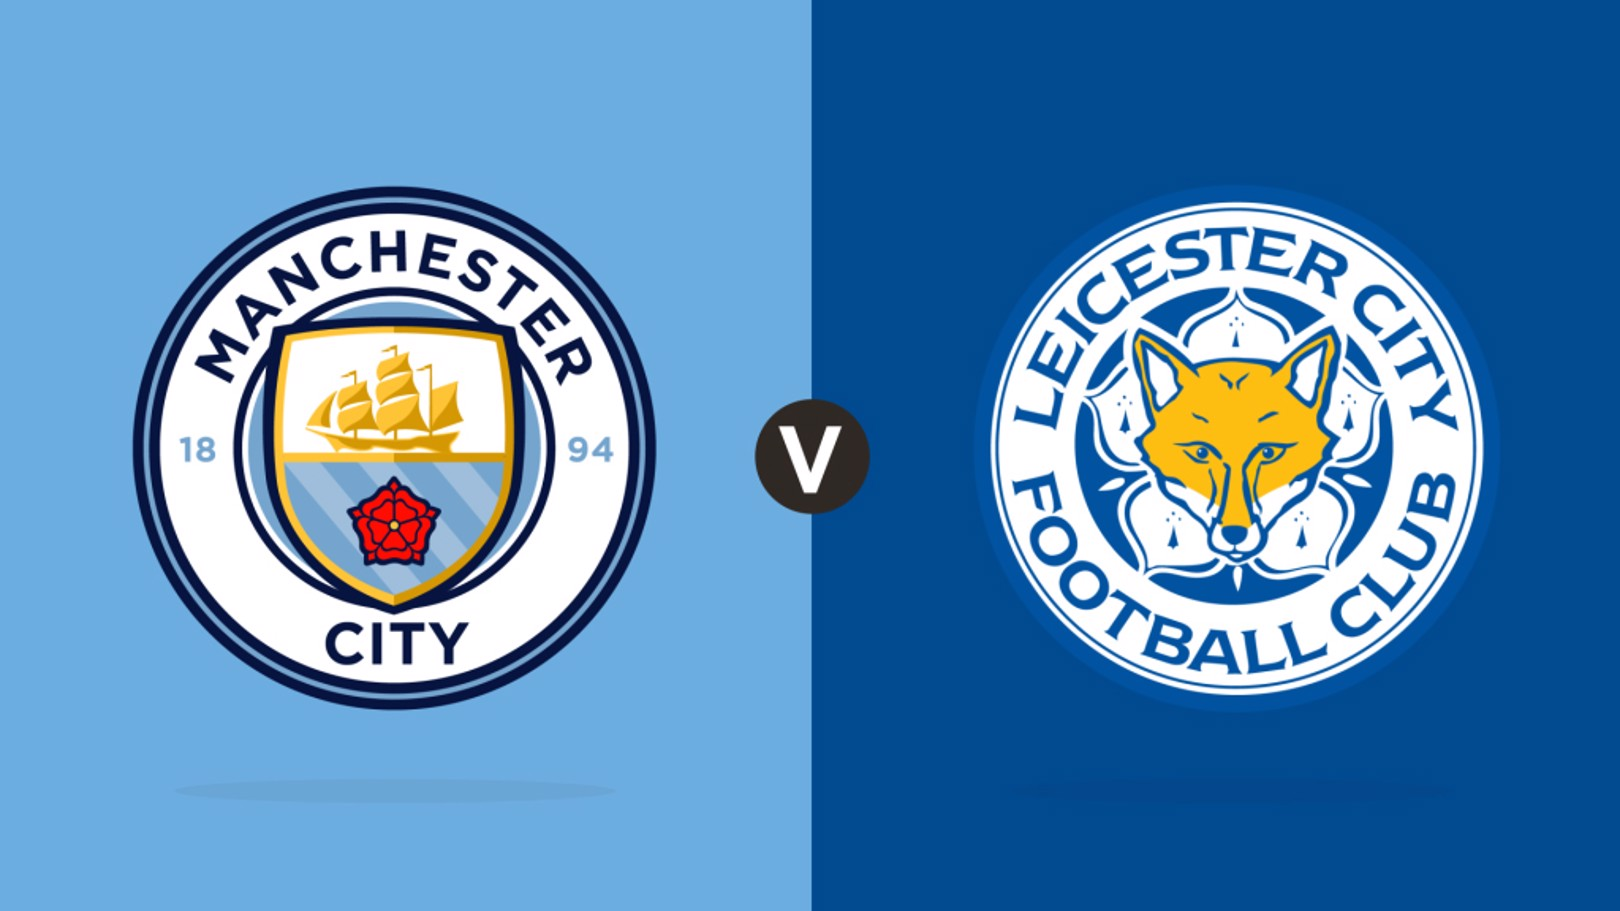 Man City v Leicester City Match centre